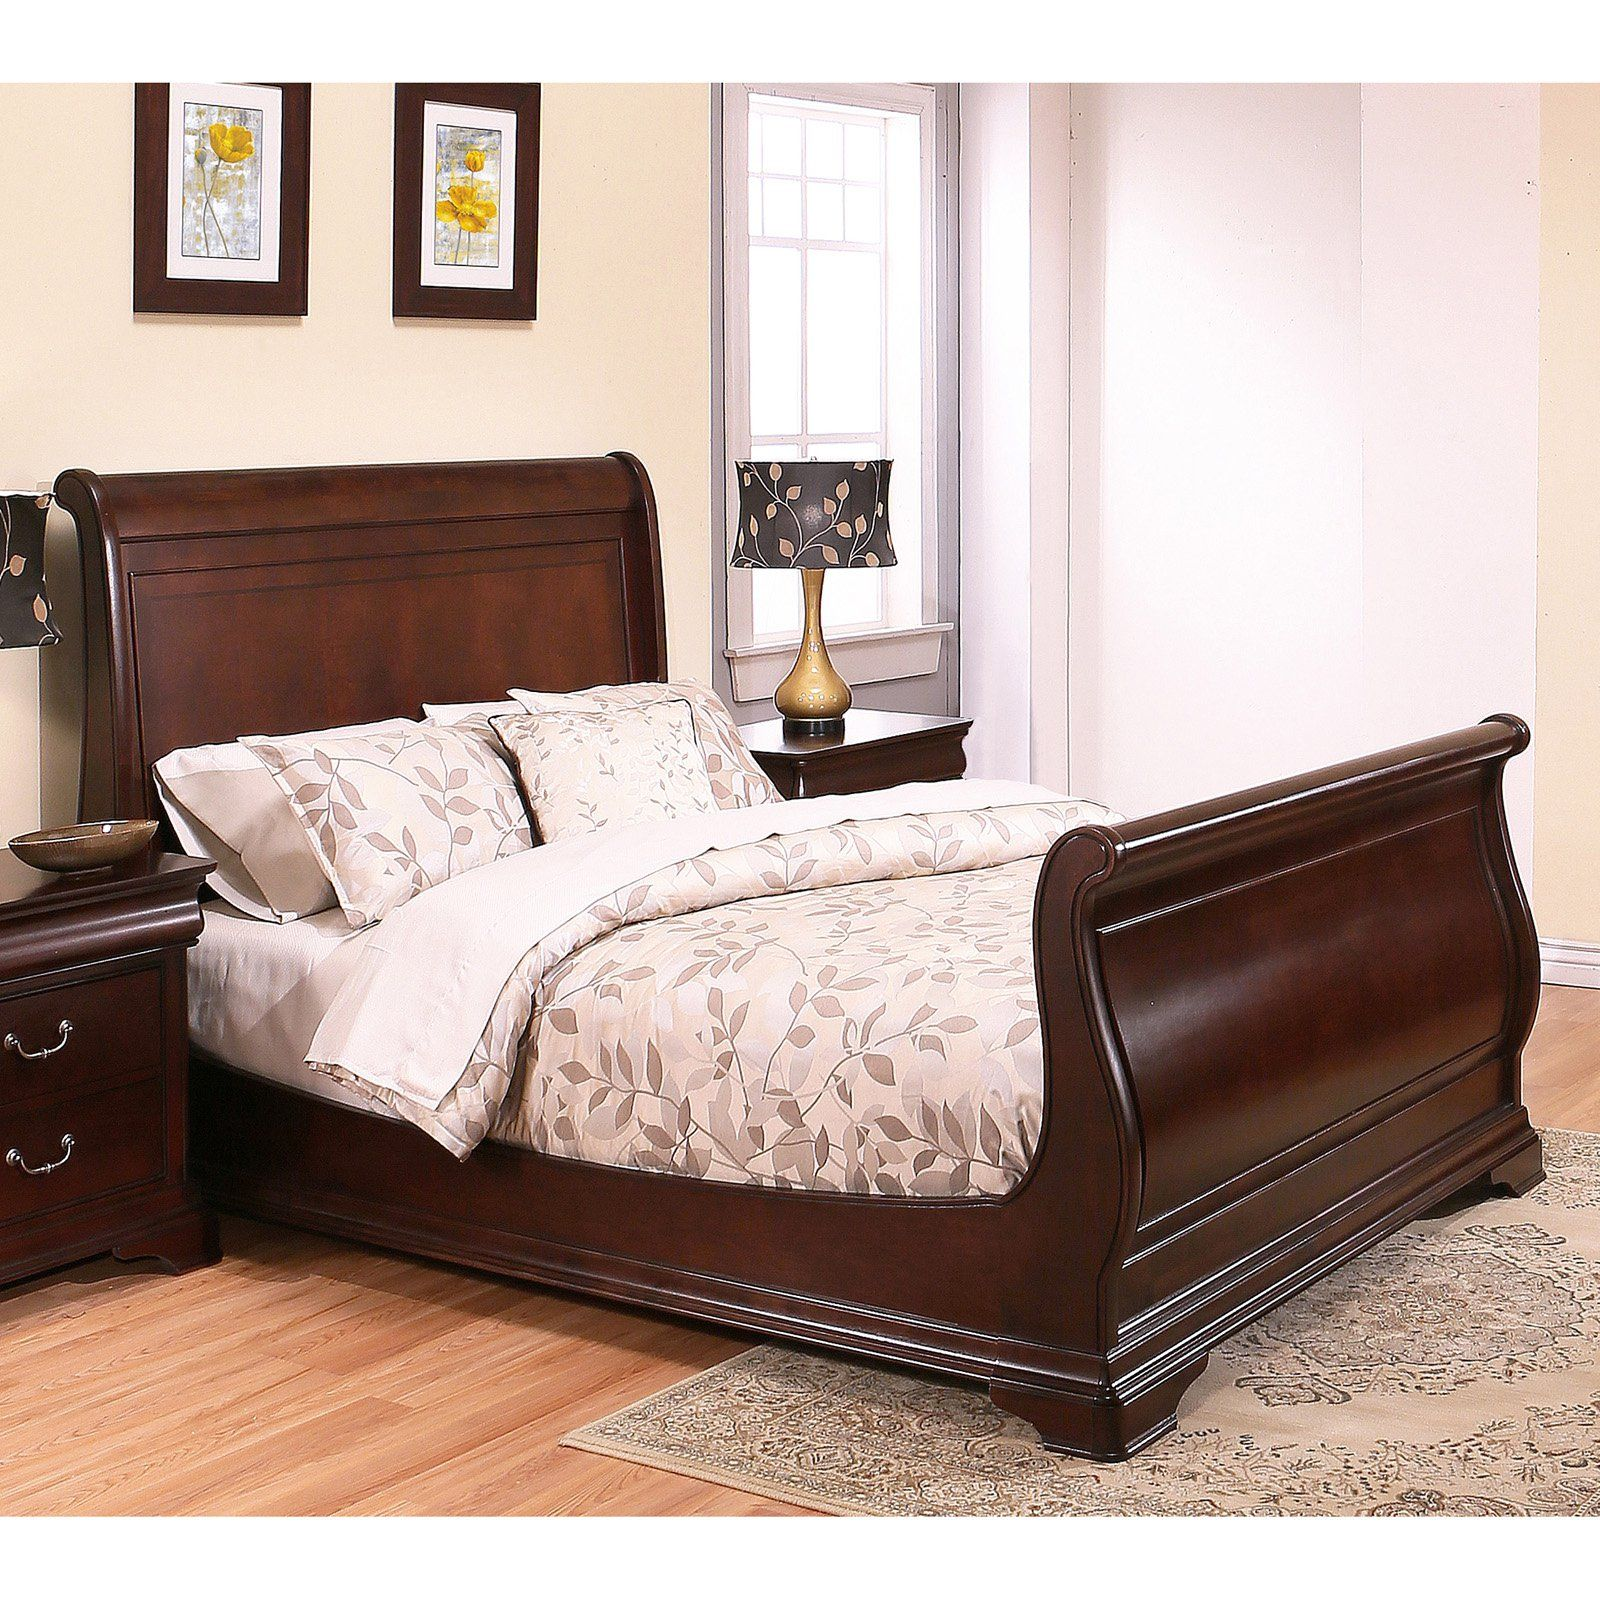 Abbyson Matilda Queen Sleigh Bed In 2020 King Bedroom Sets